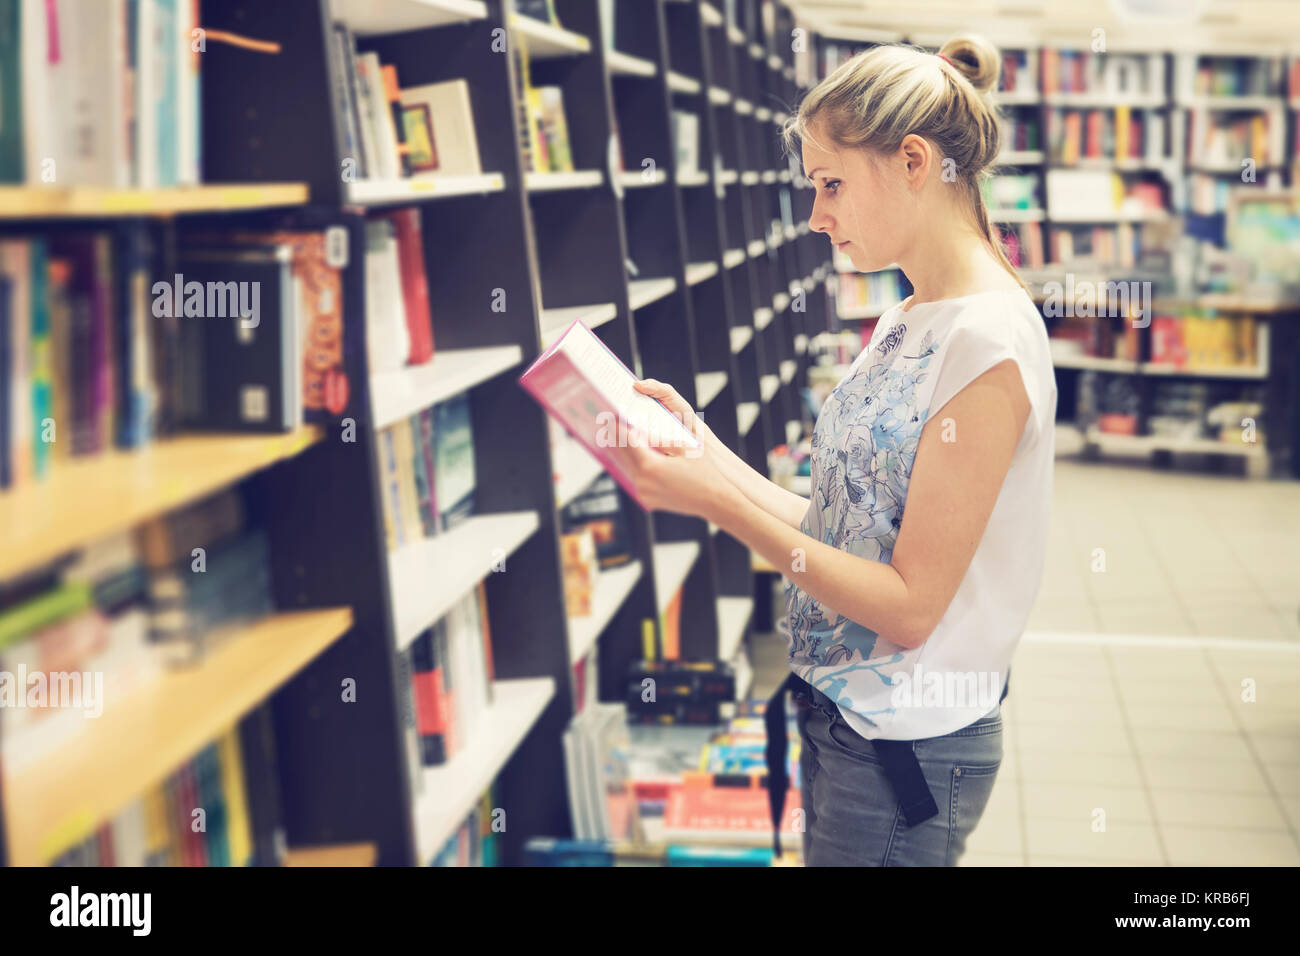 young woman choosing a book to buy in bookstore - Stock Image